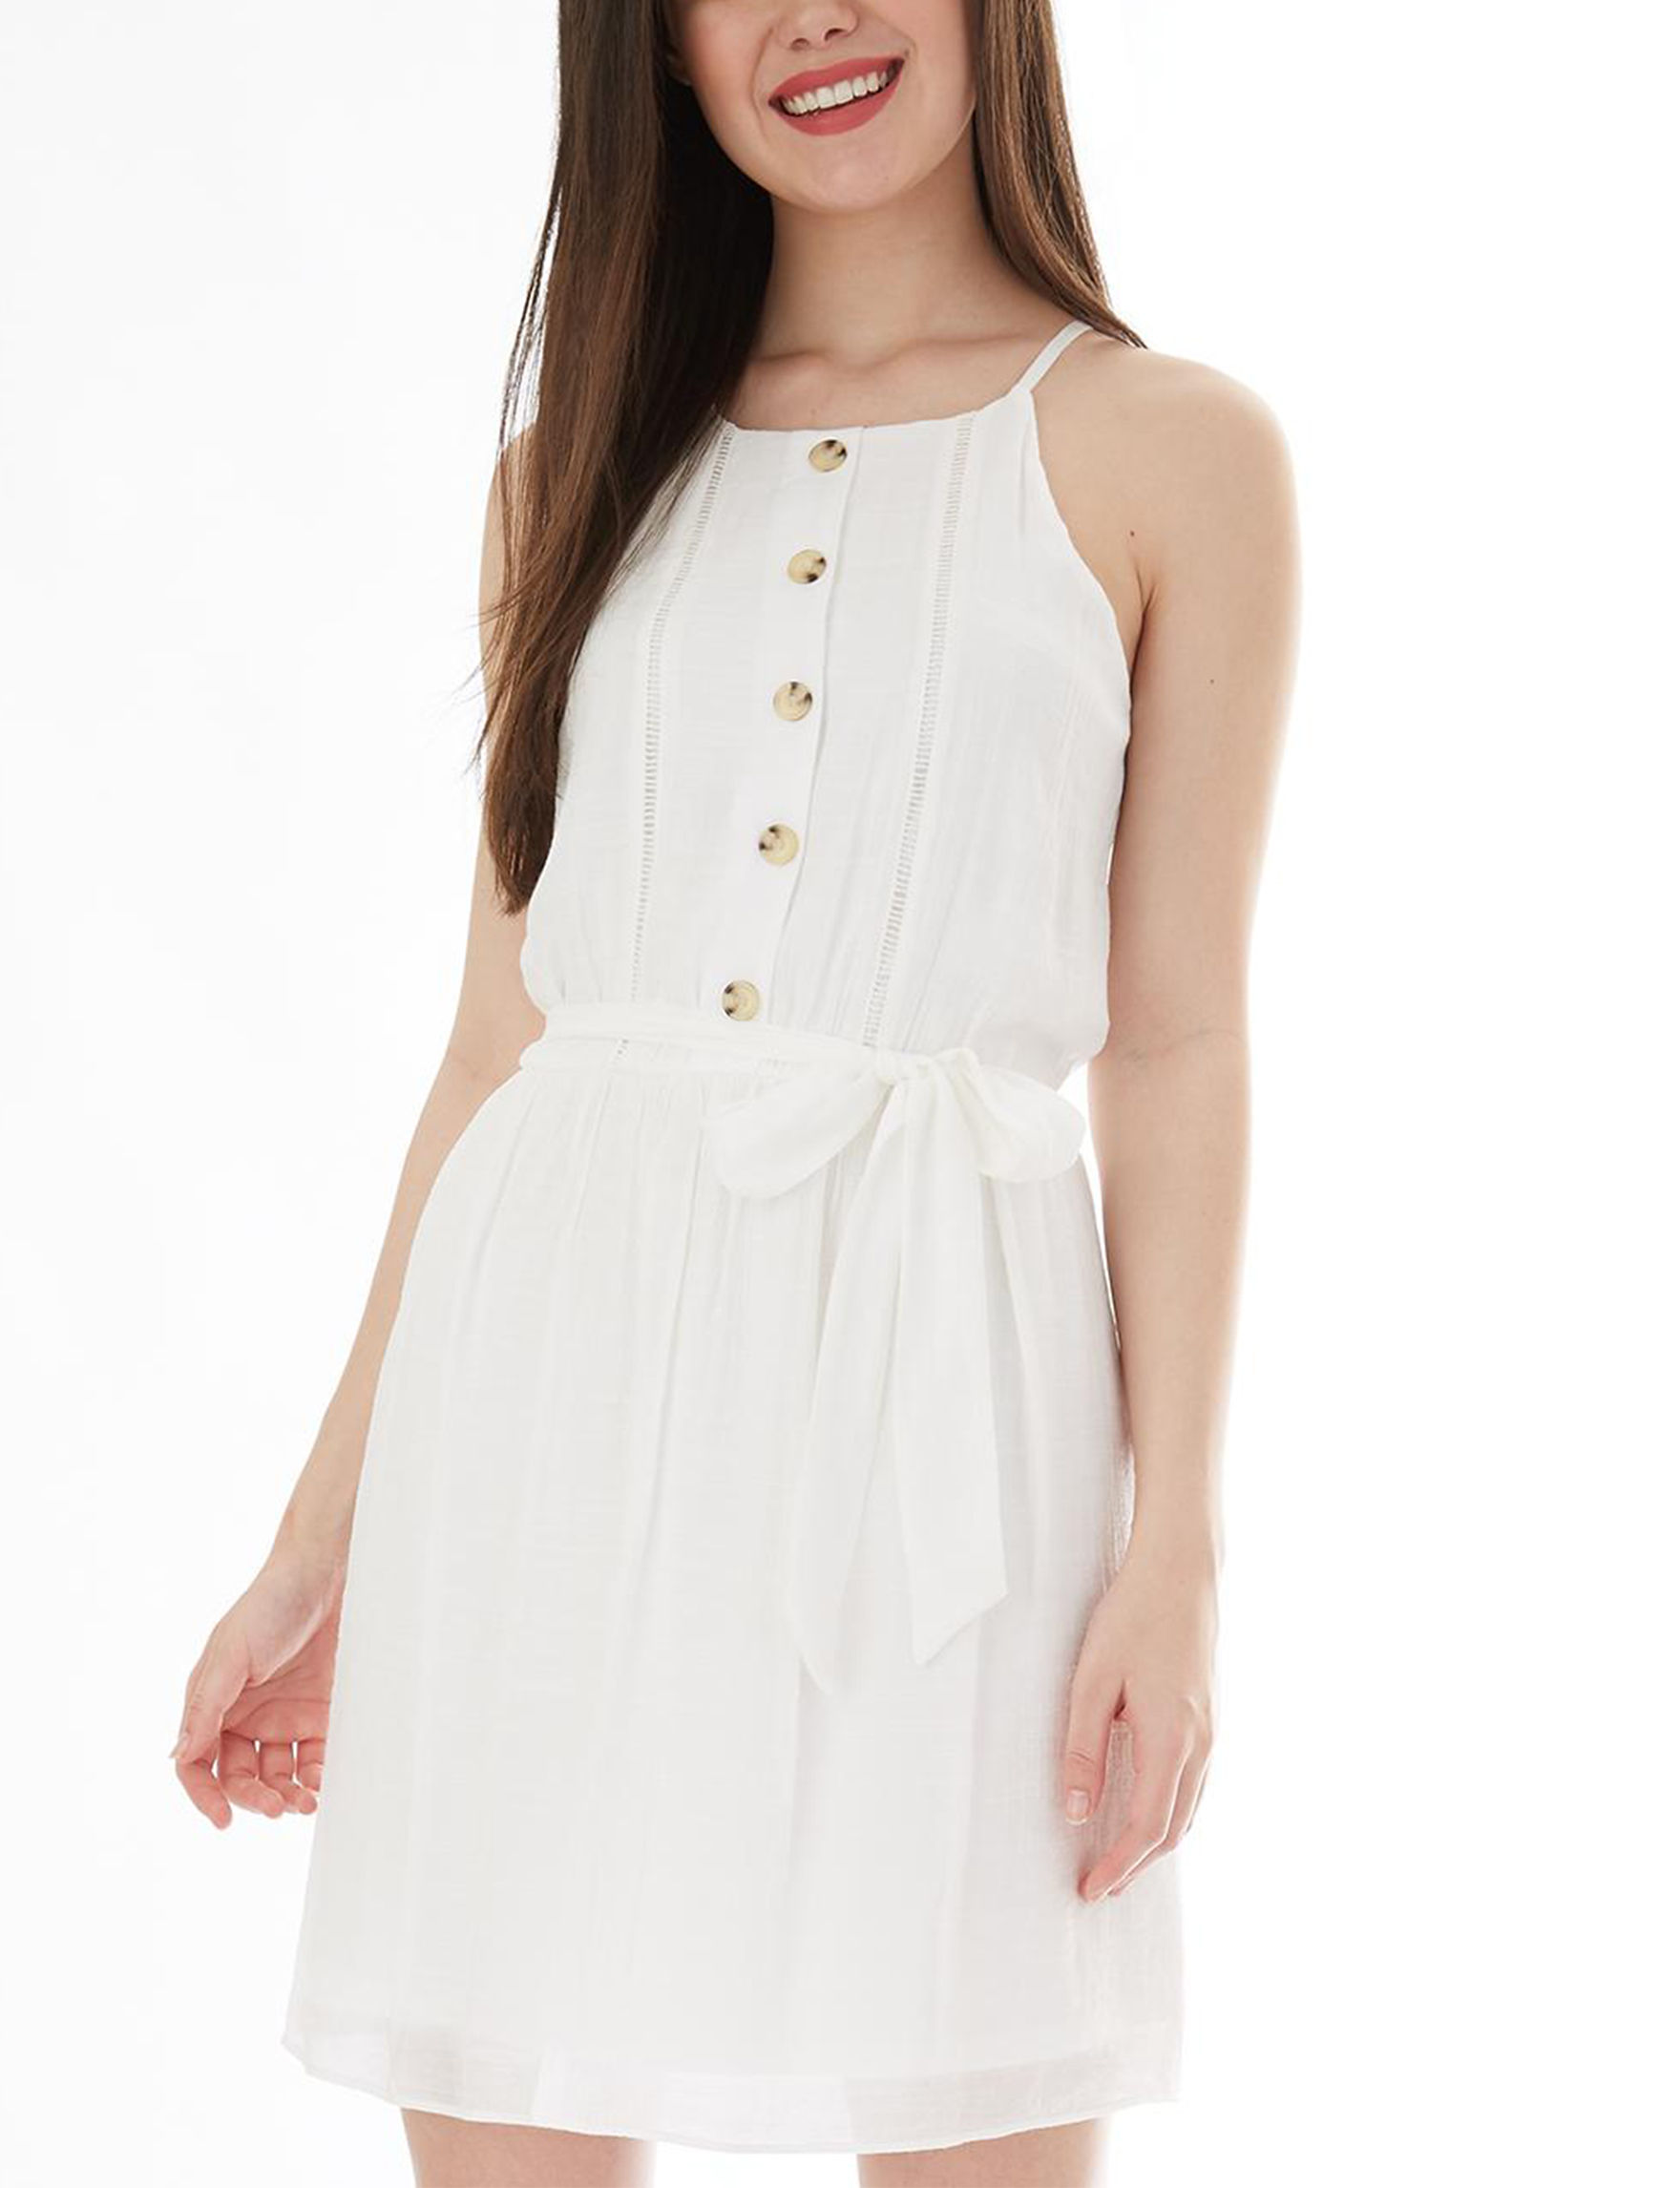 A. Byer White Everyday & Casual Fit & Flare Dresses Halter